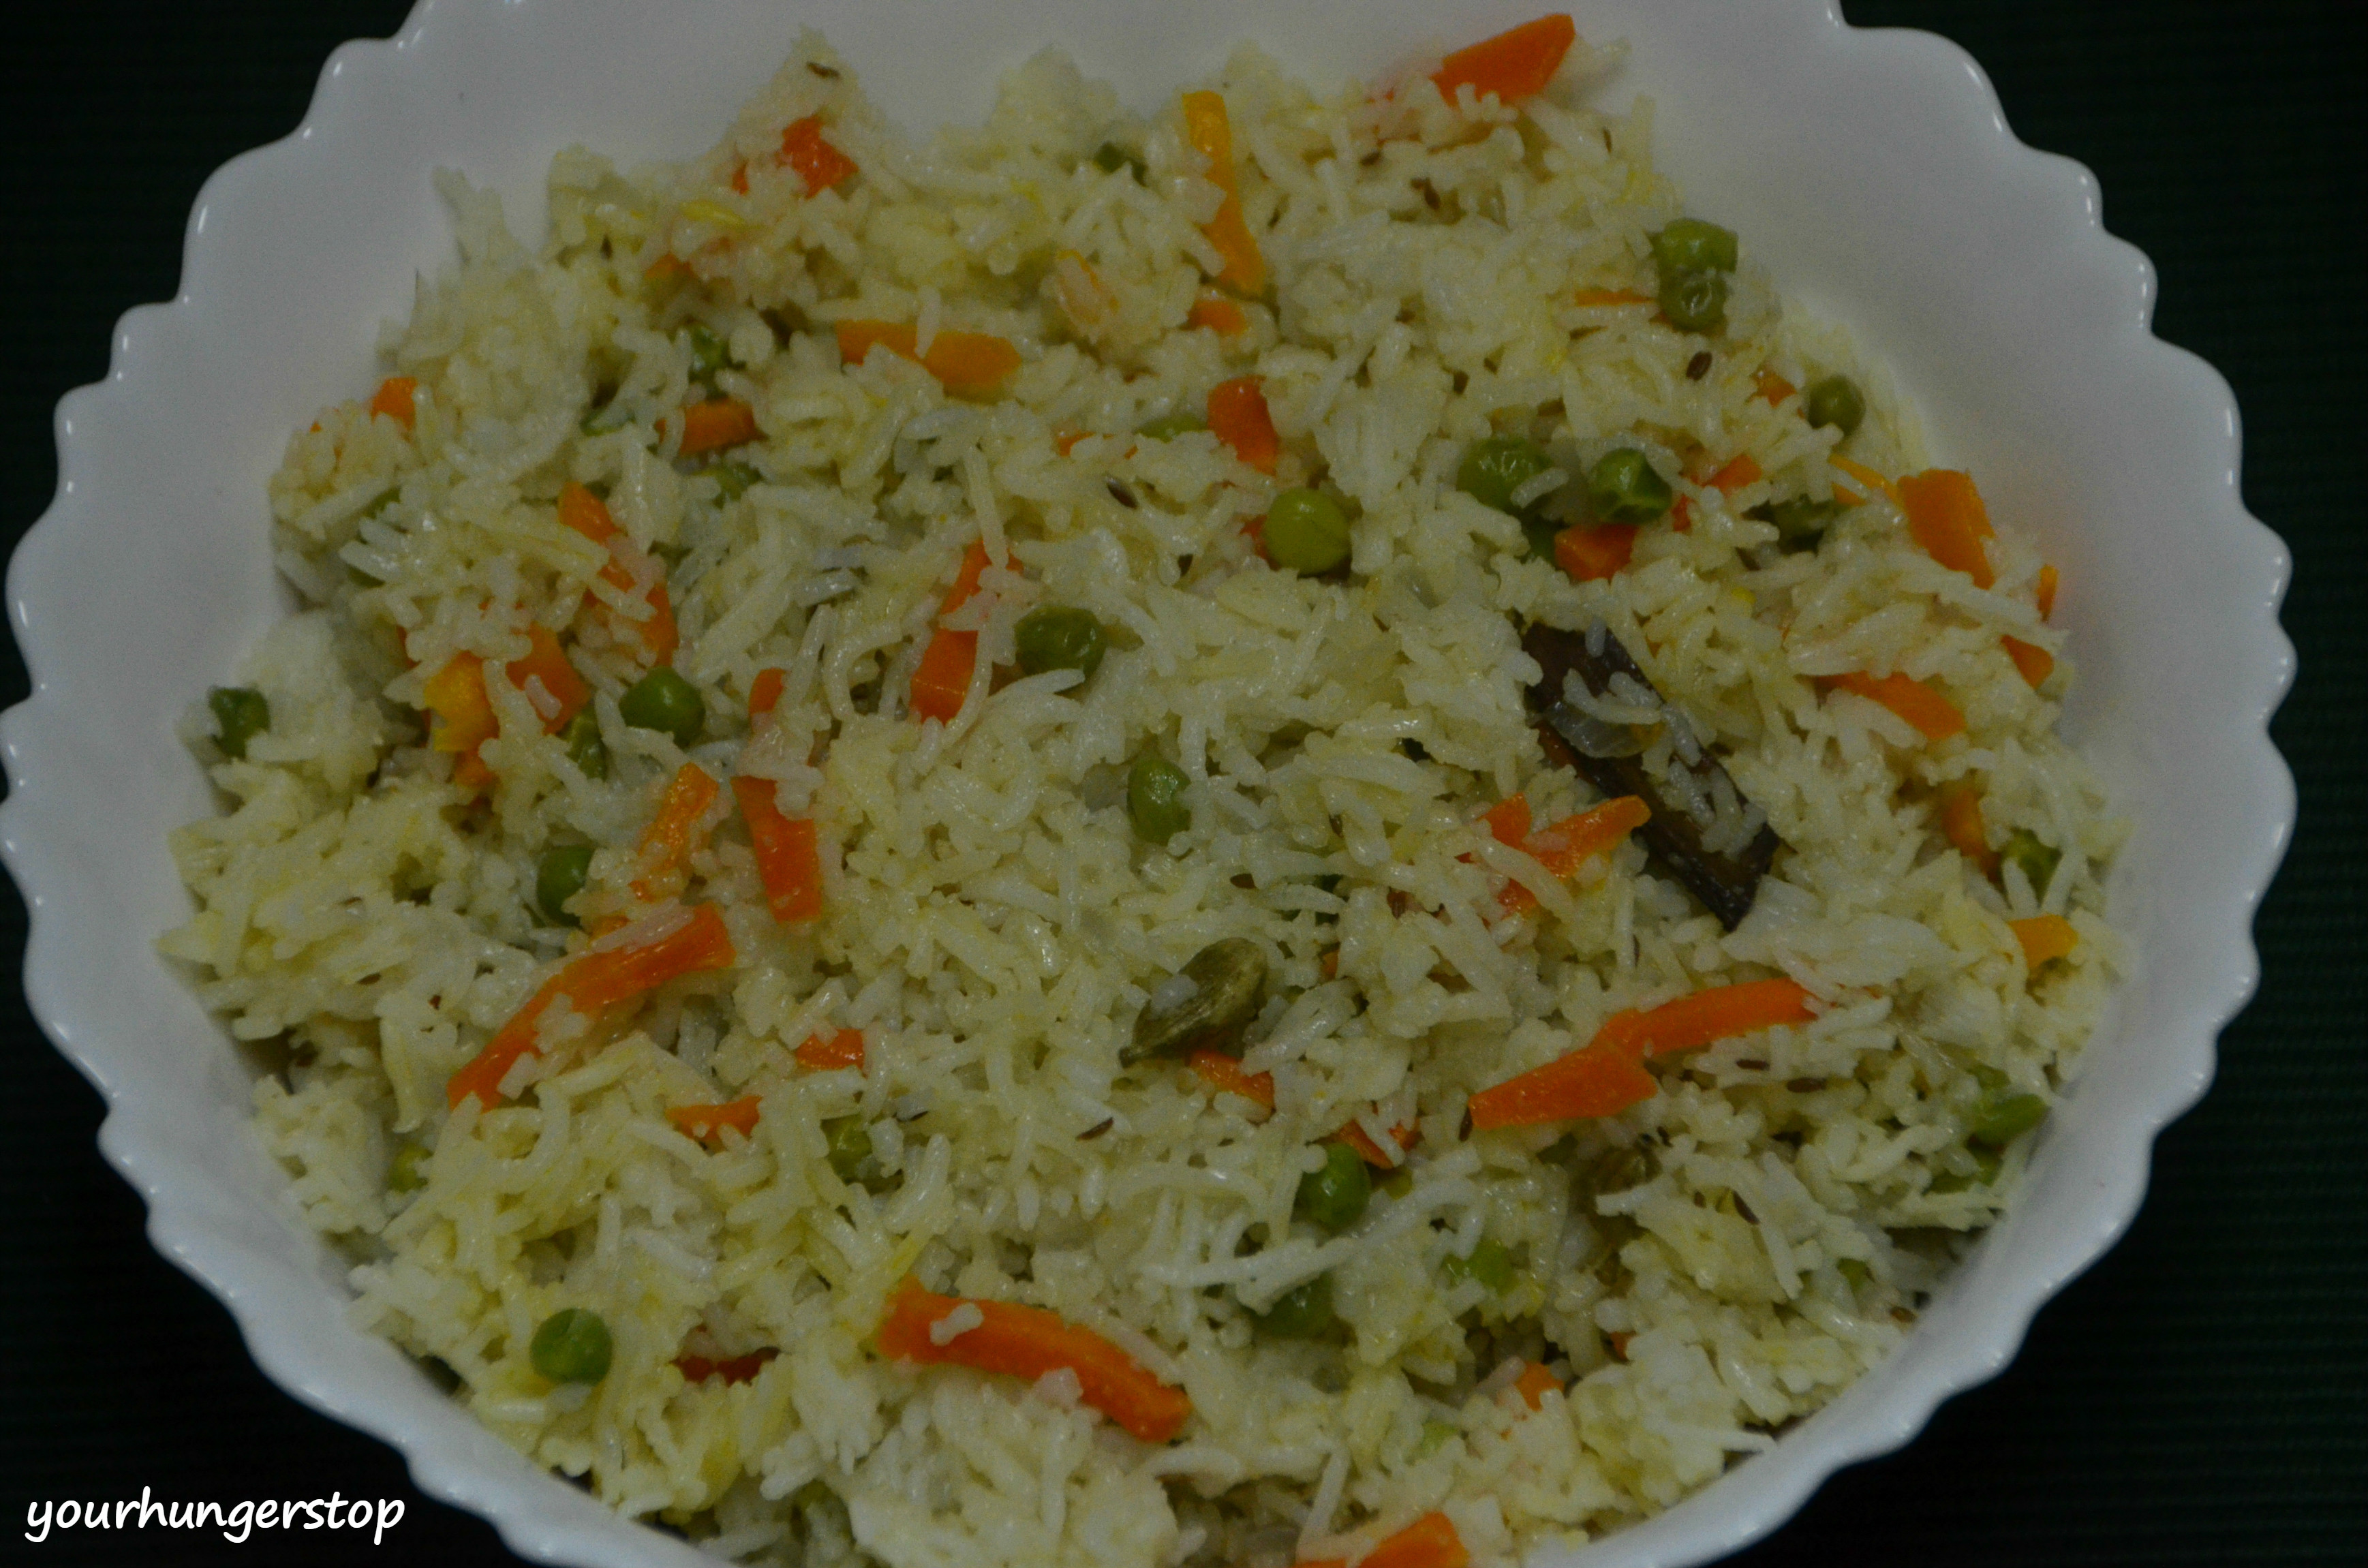 Vegetable pulao yourhungerstop vegetable pulao is a rice dish prepared by cooking rice with various vegetables and spices it is a very simple recipe and gets ready in a jiffy forumfinder Images